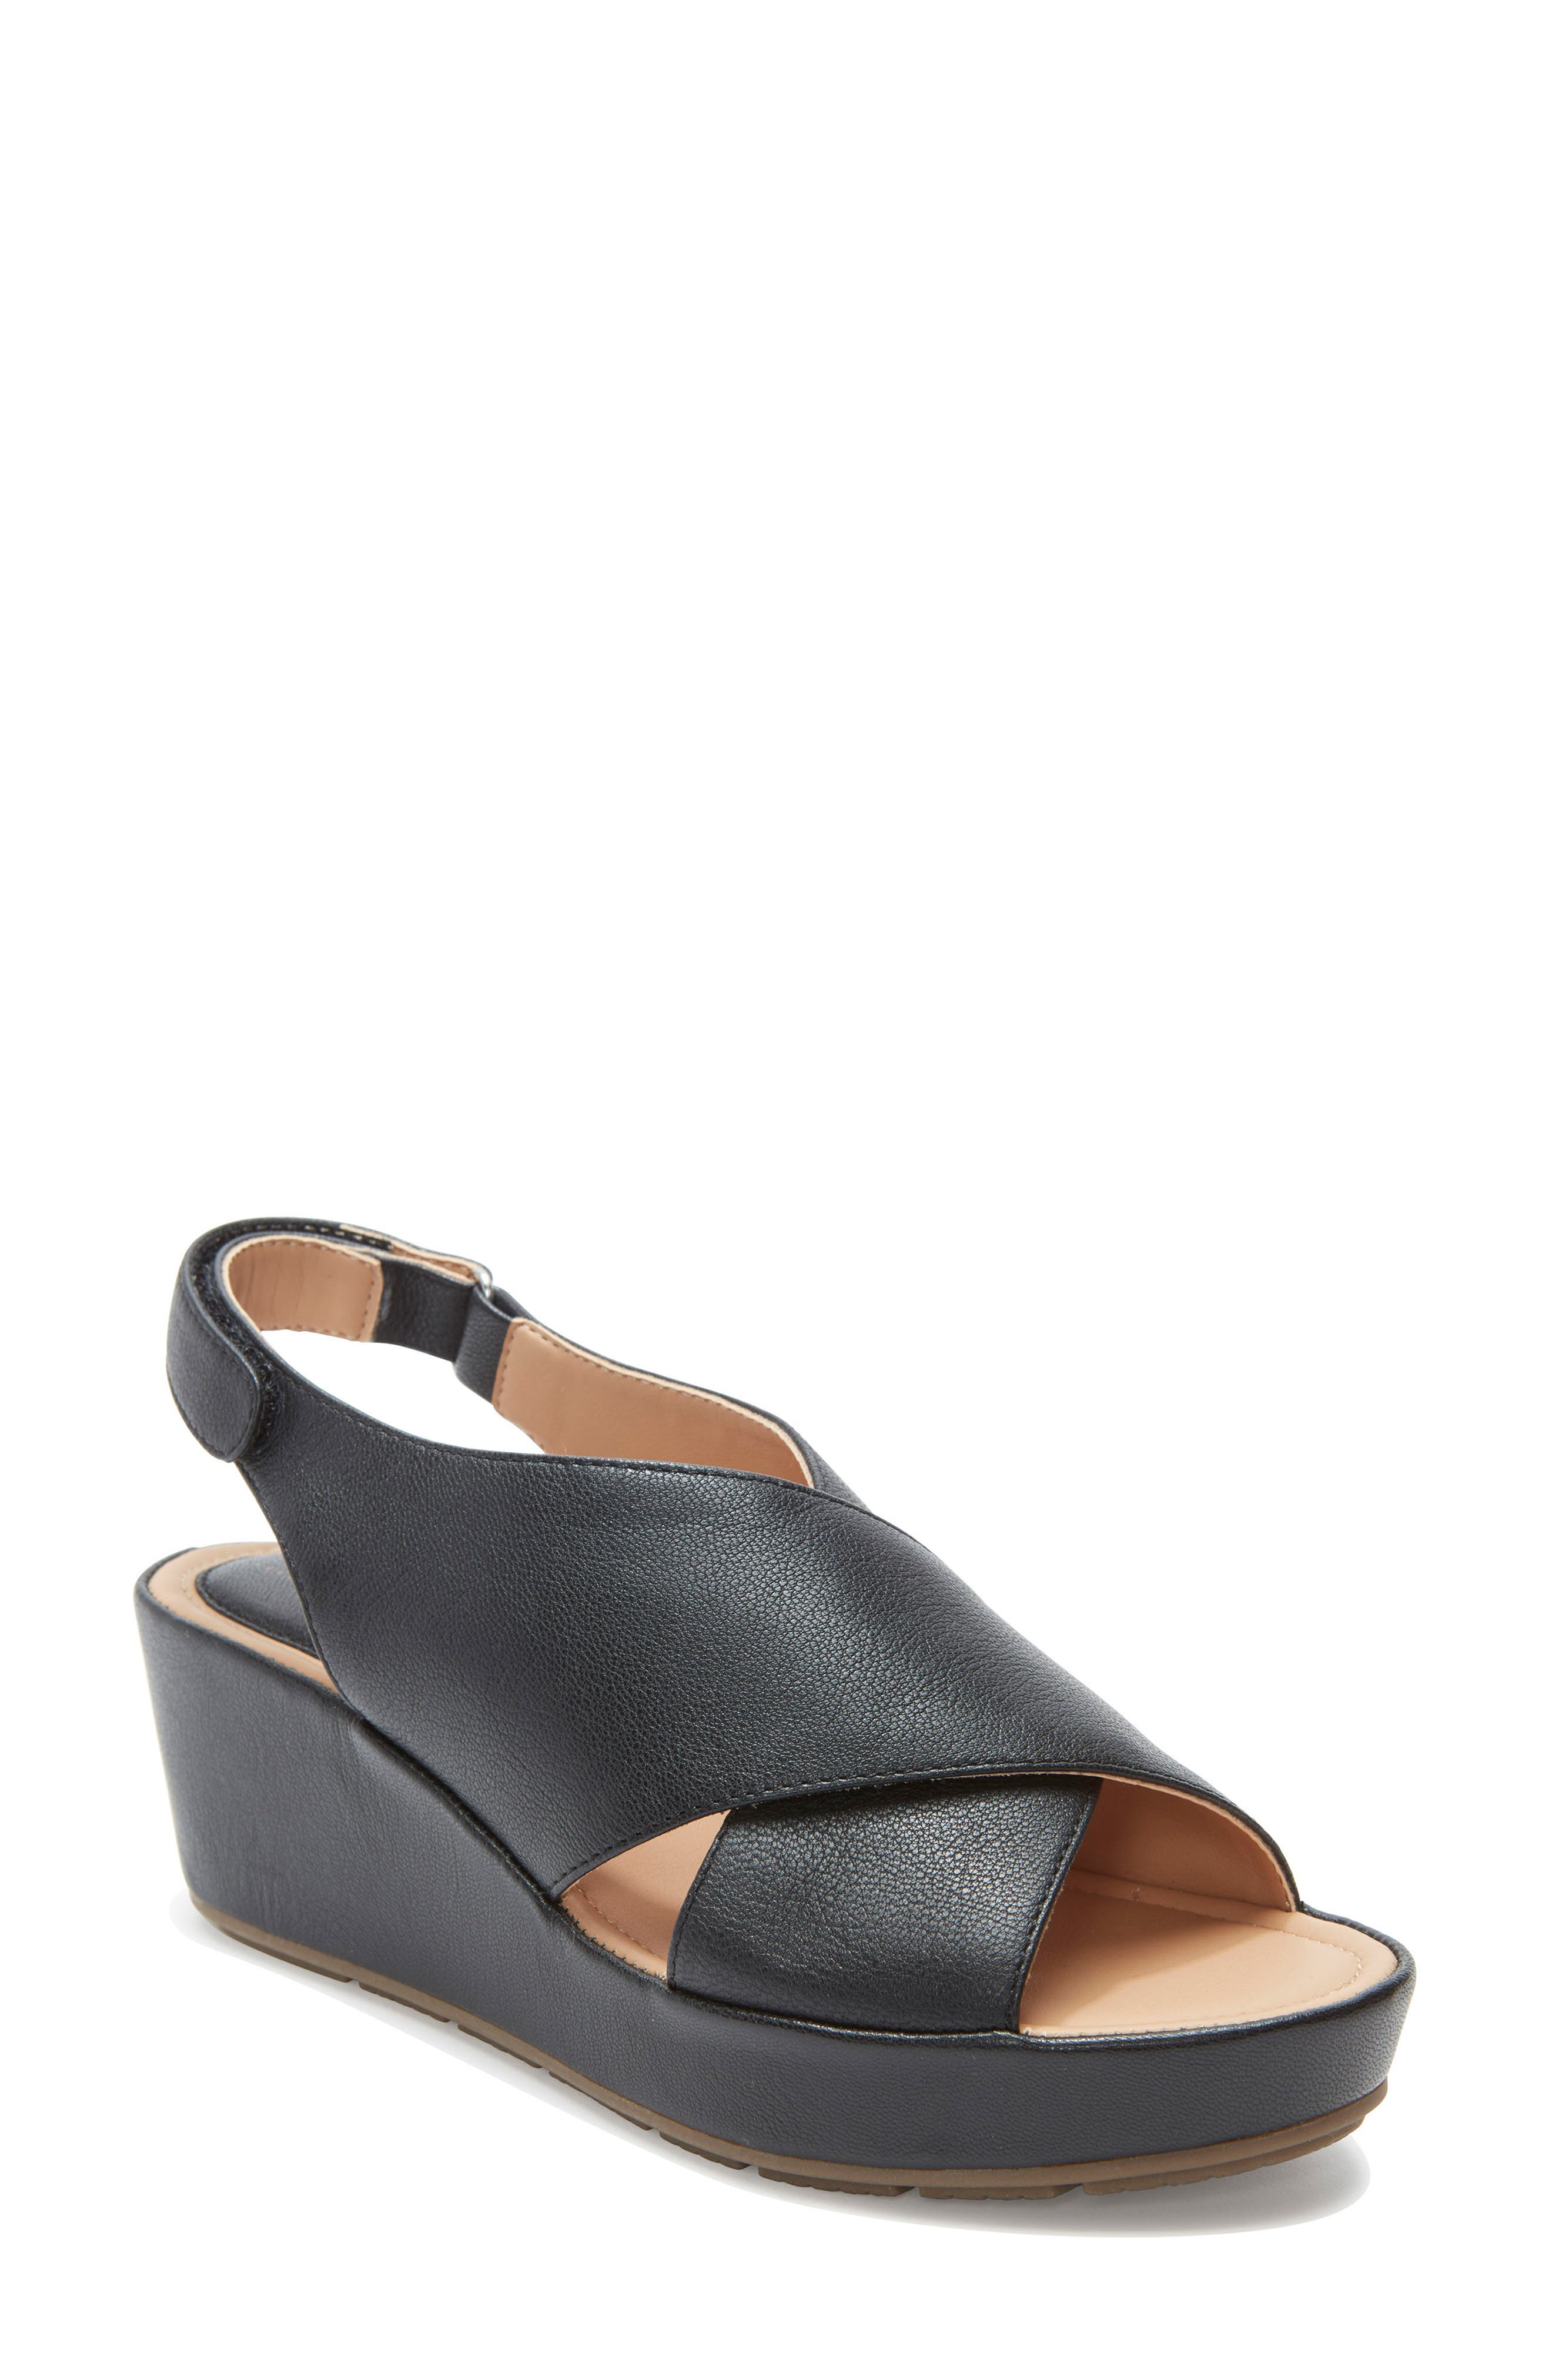 Arena Wedge Sandal, Main, color, BLACK LEATHER